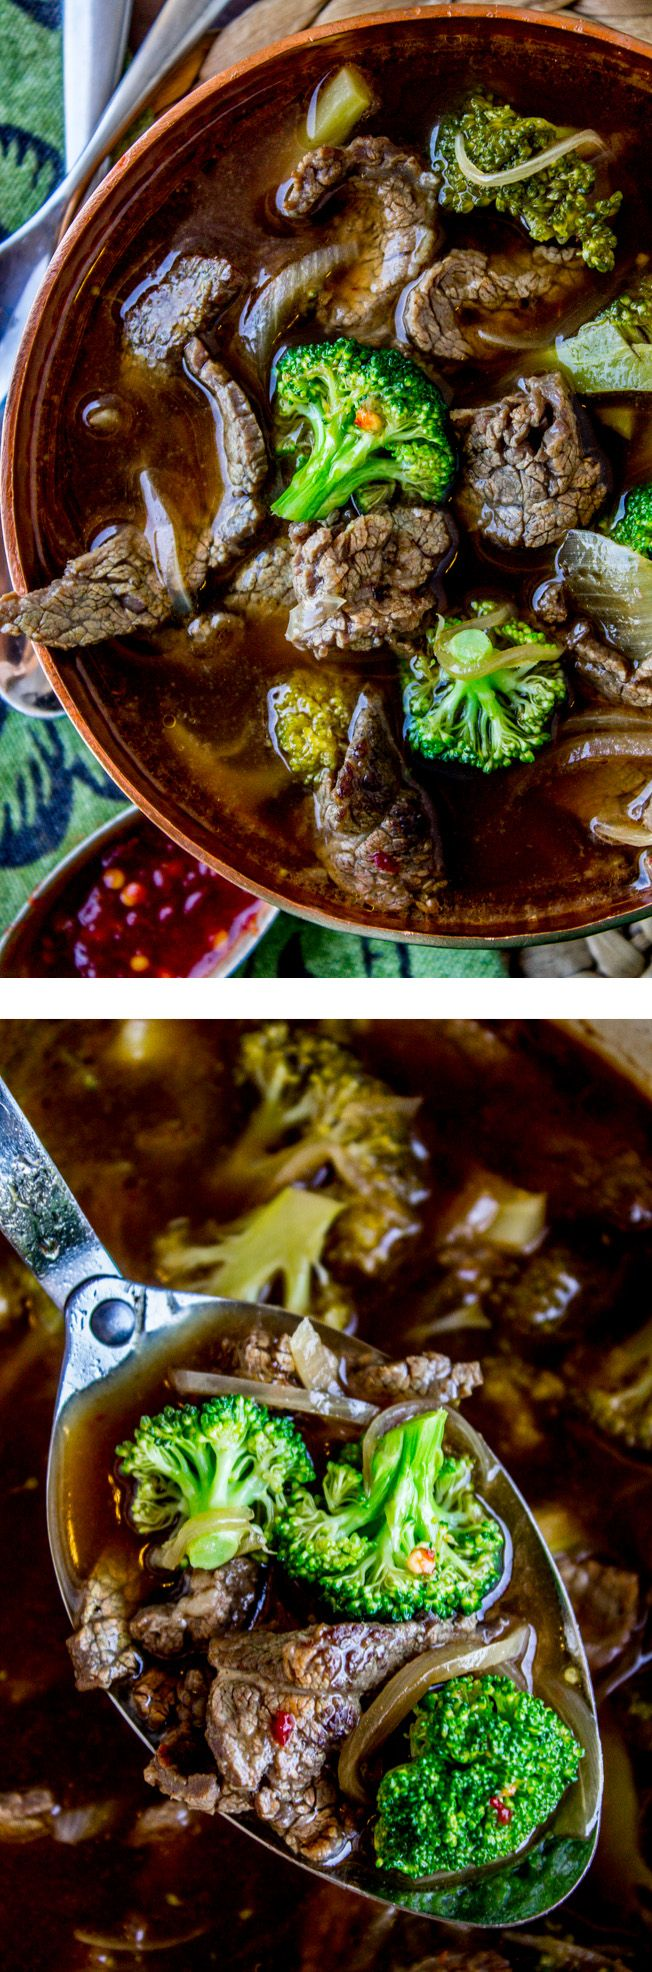 It's your favorite Chinese beef and broccoli dish, turned into soup! Strips of super tender beef, paired with broccoli in a rich and spicy broth.